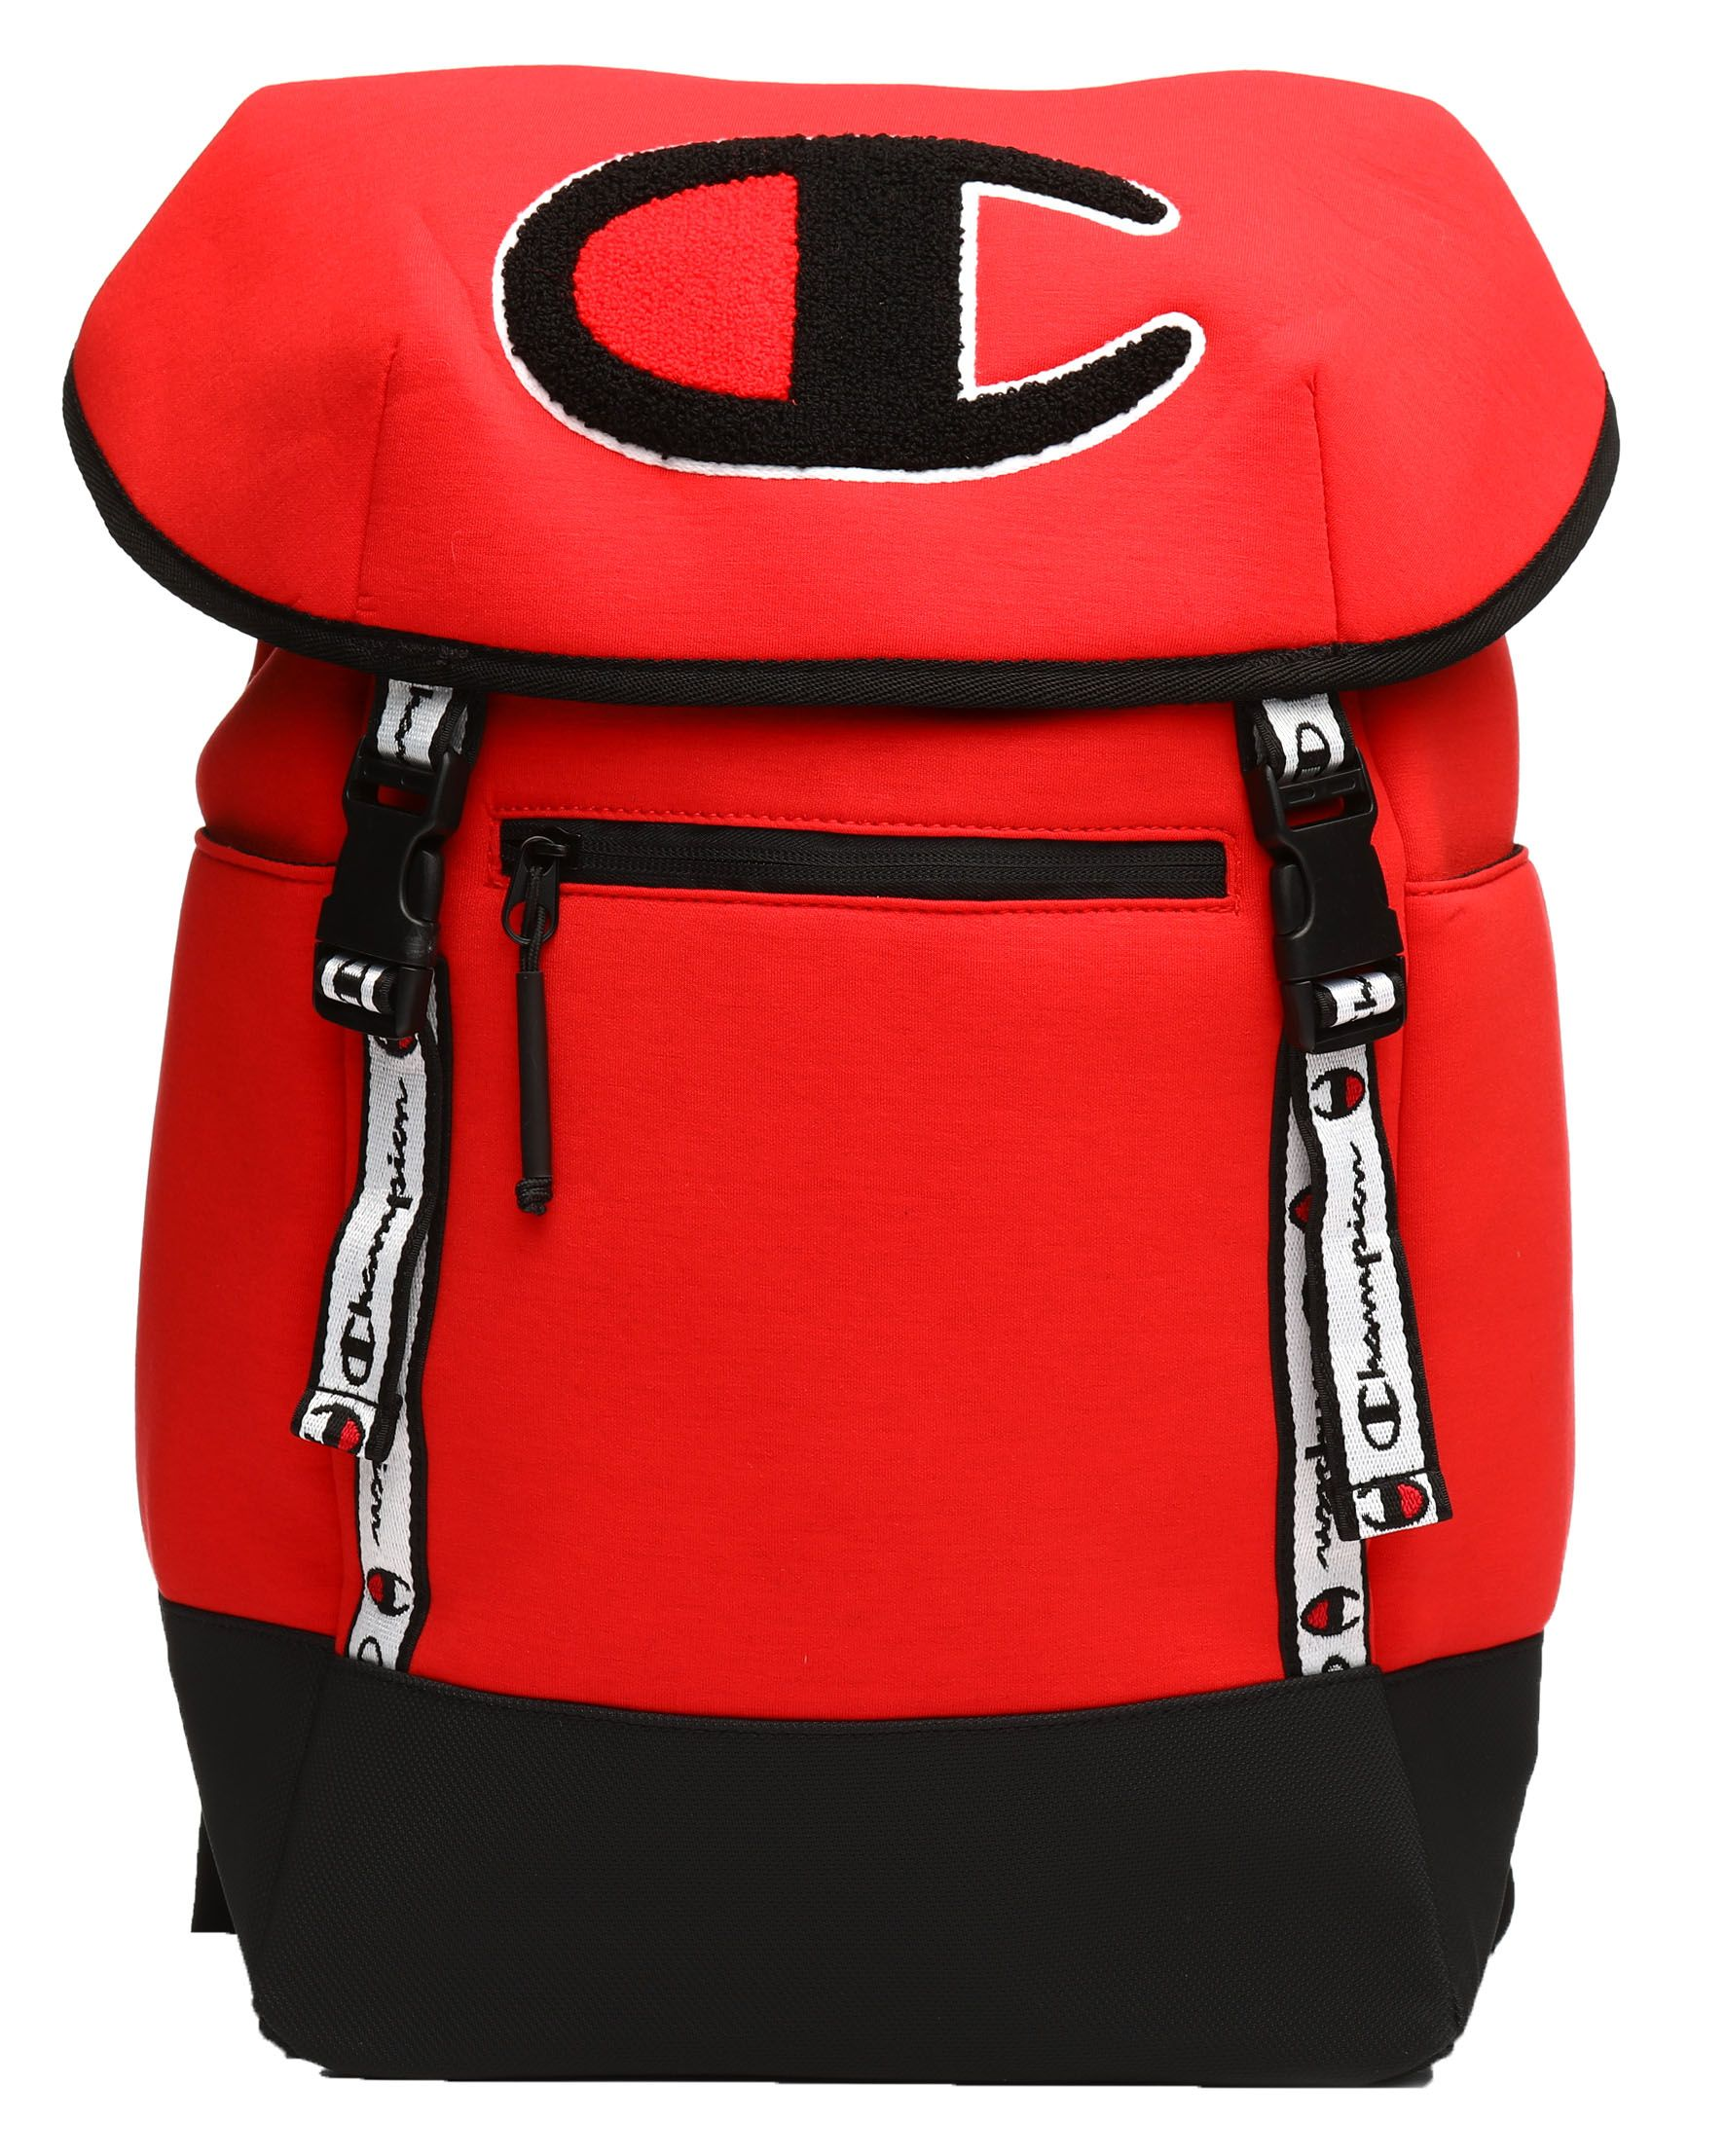 325102d343 Top Load Backpack Women s Accessories from Champion at DrJays.com ...